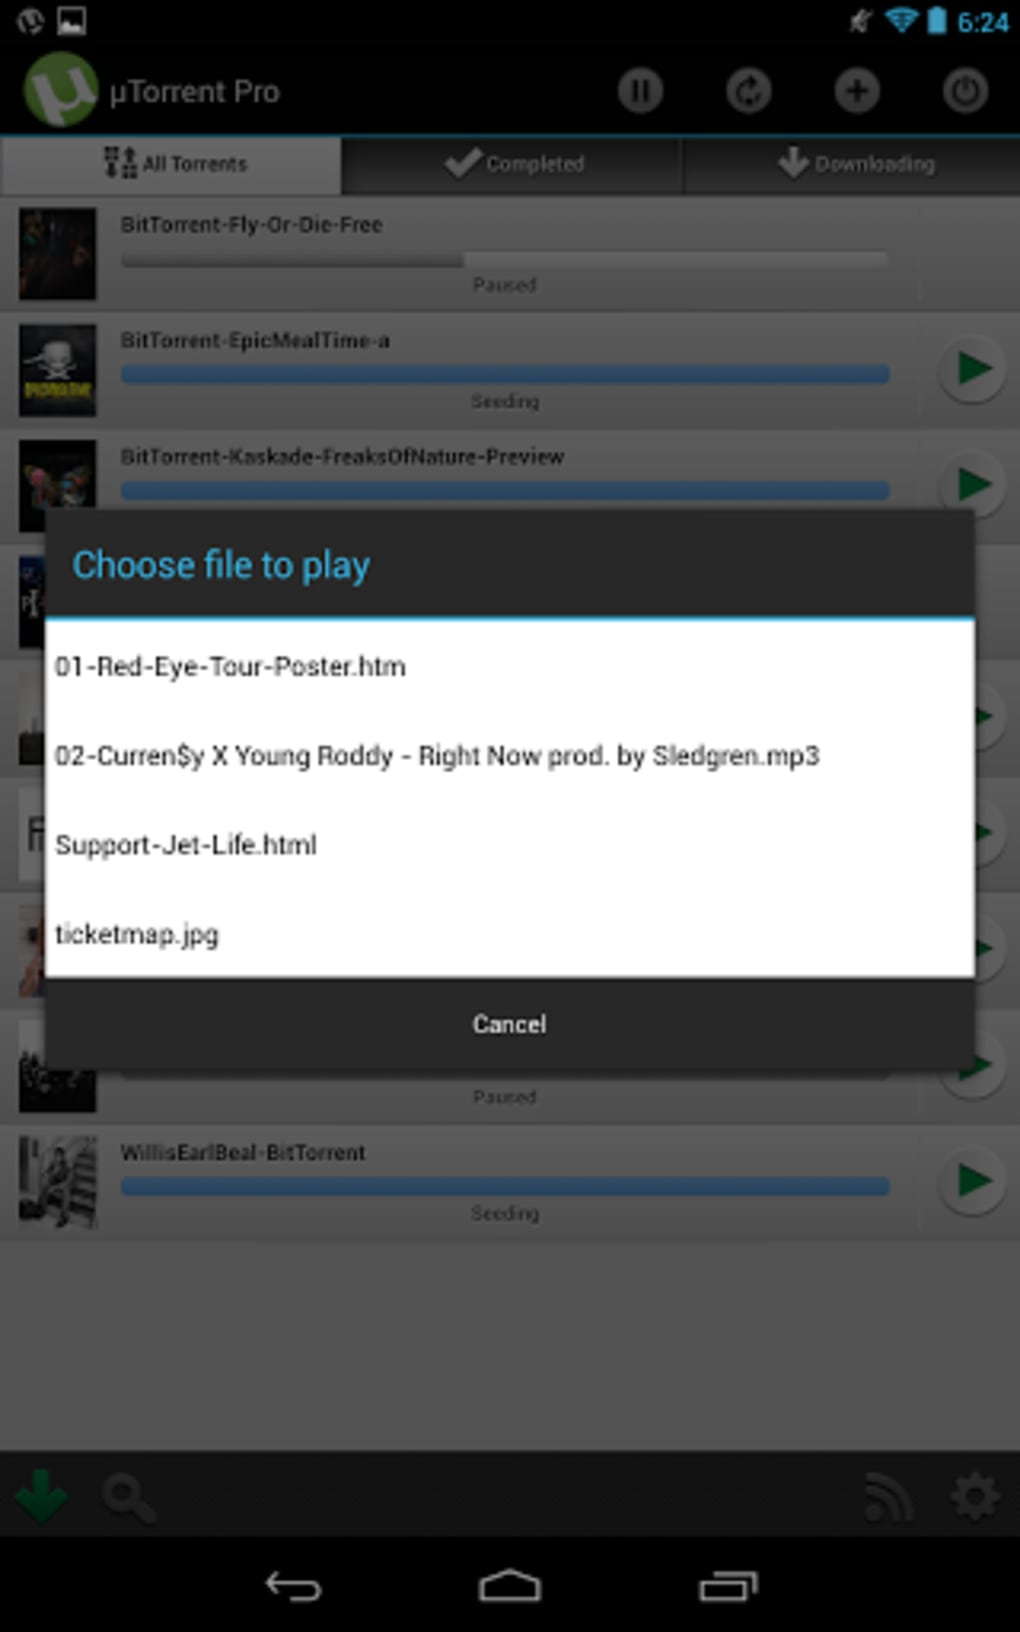 utorrent pro free download android